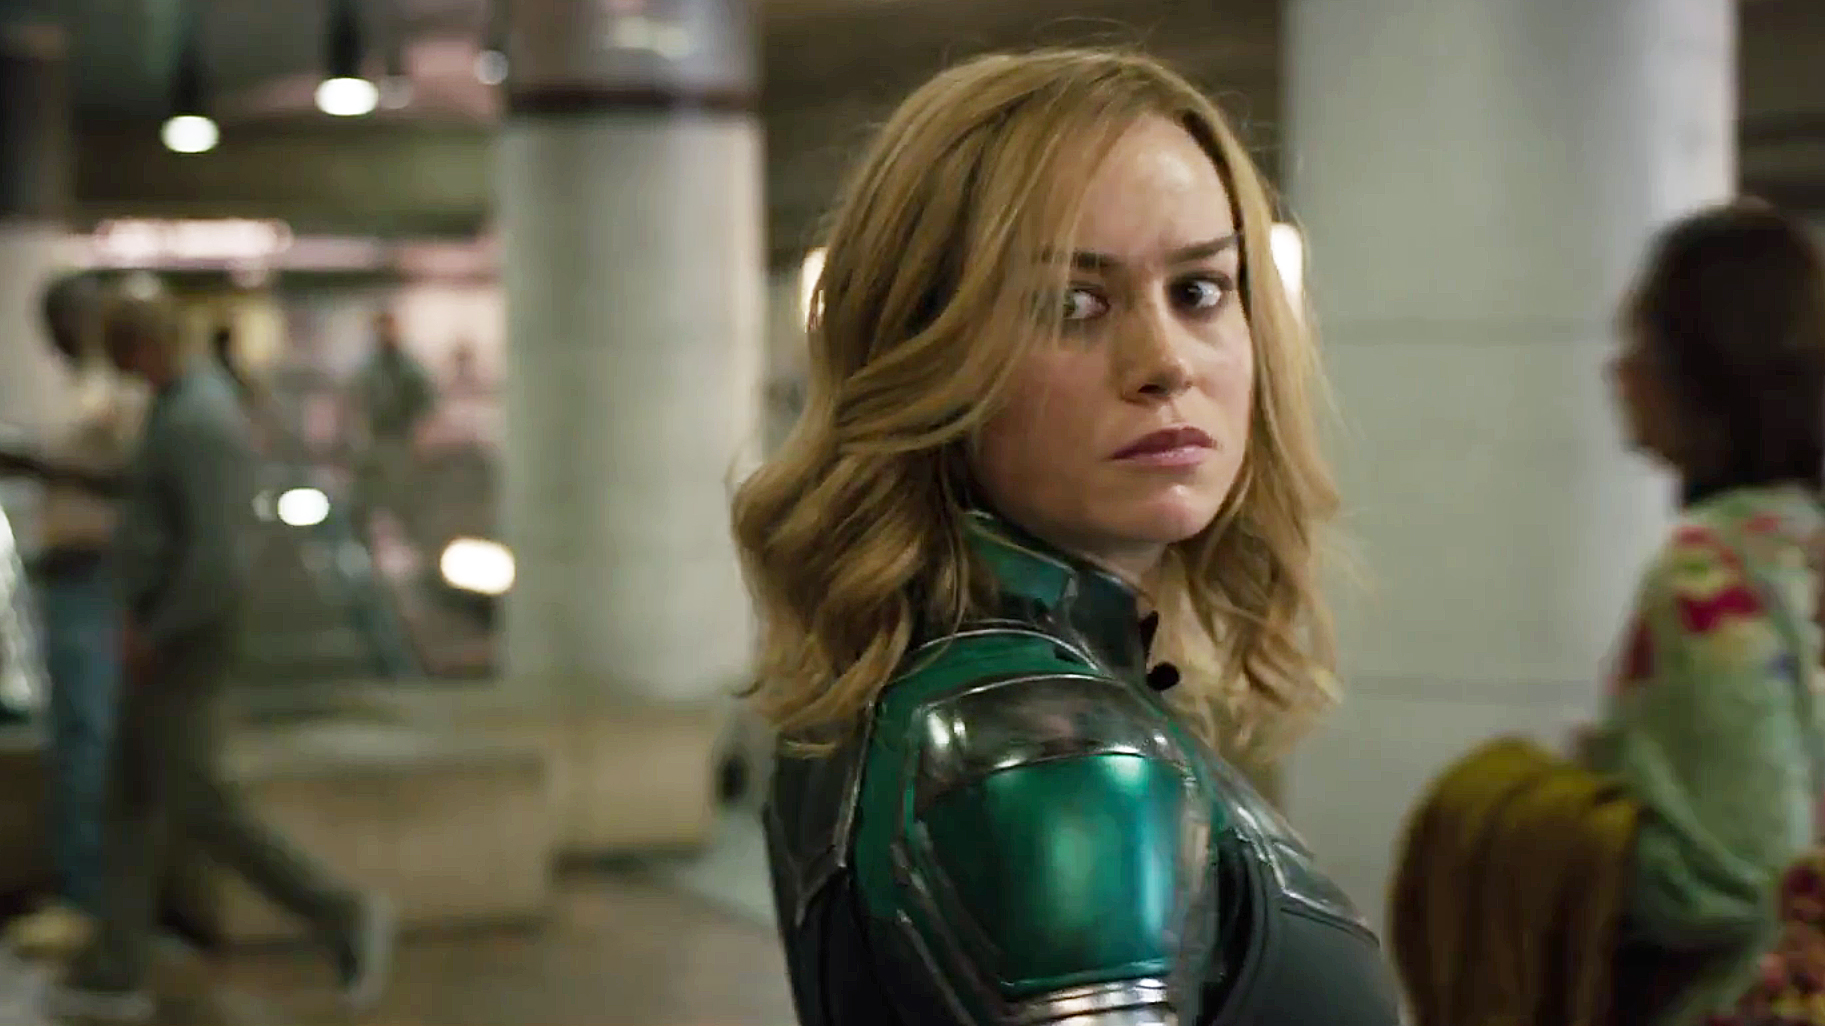 Captain Marvel Trailer First Clip With Brie Larson Has Been Released